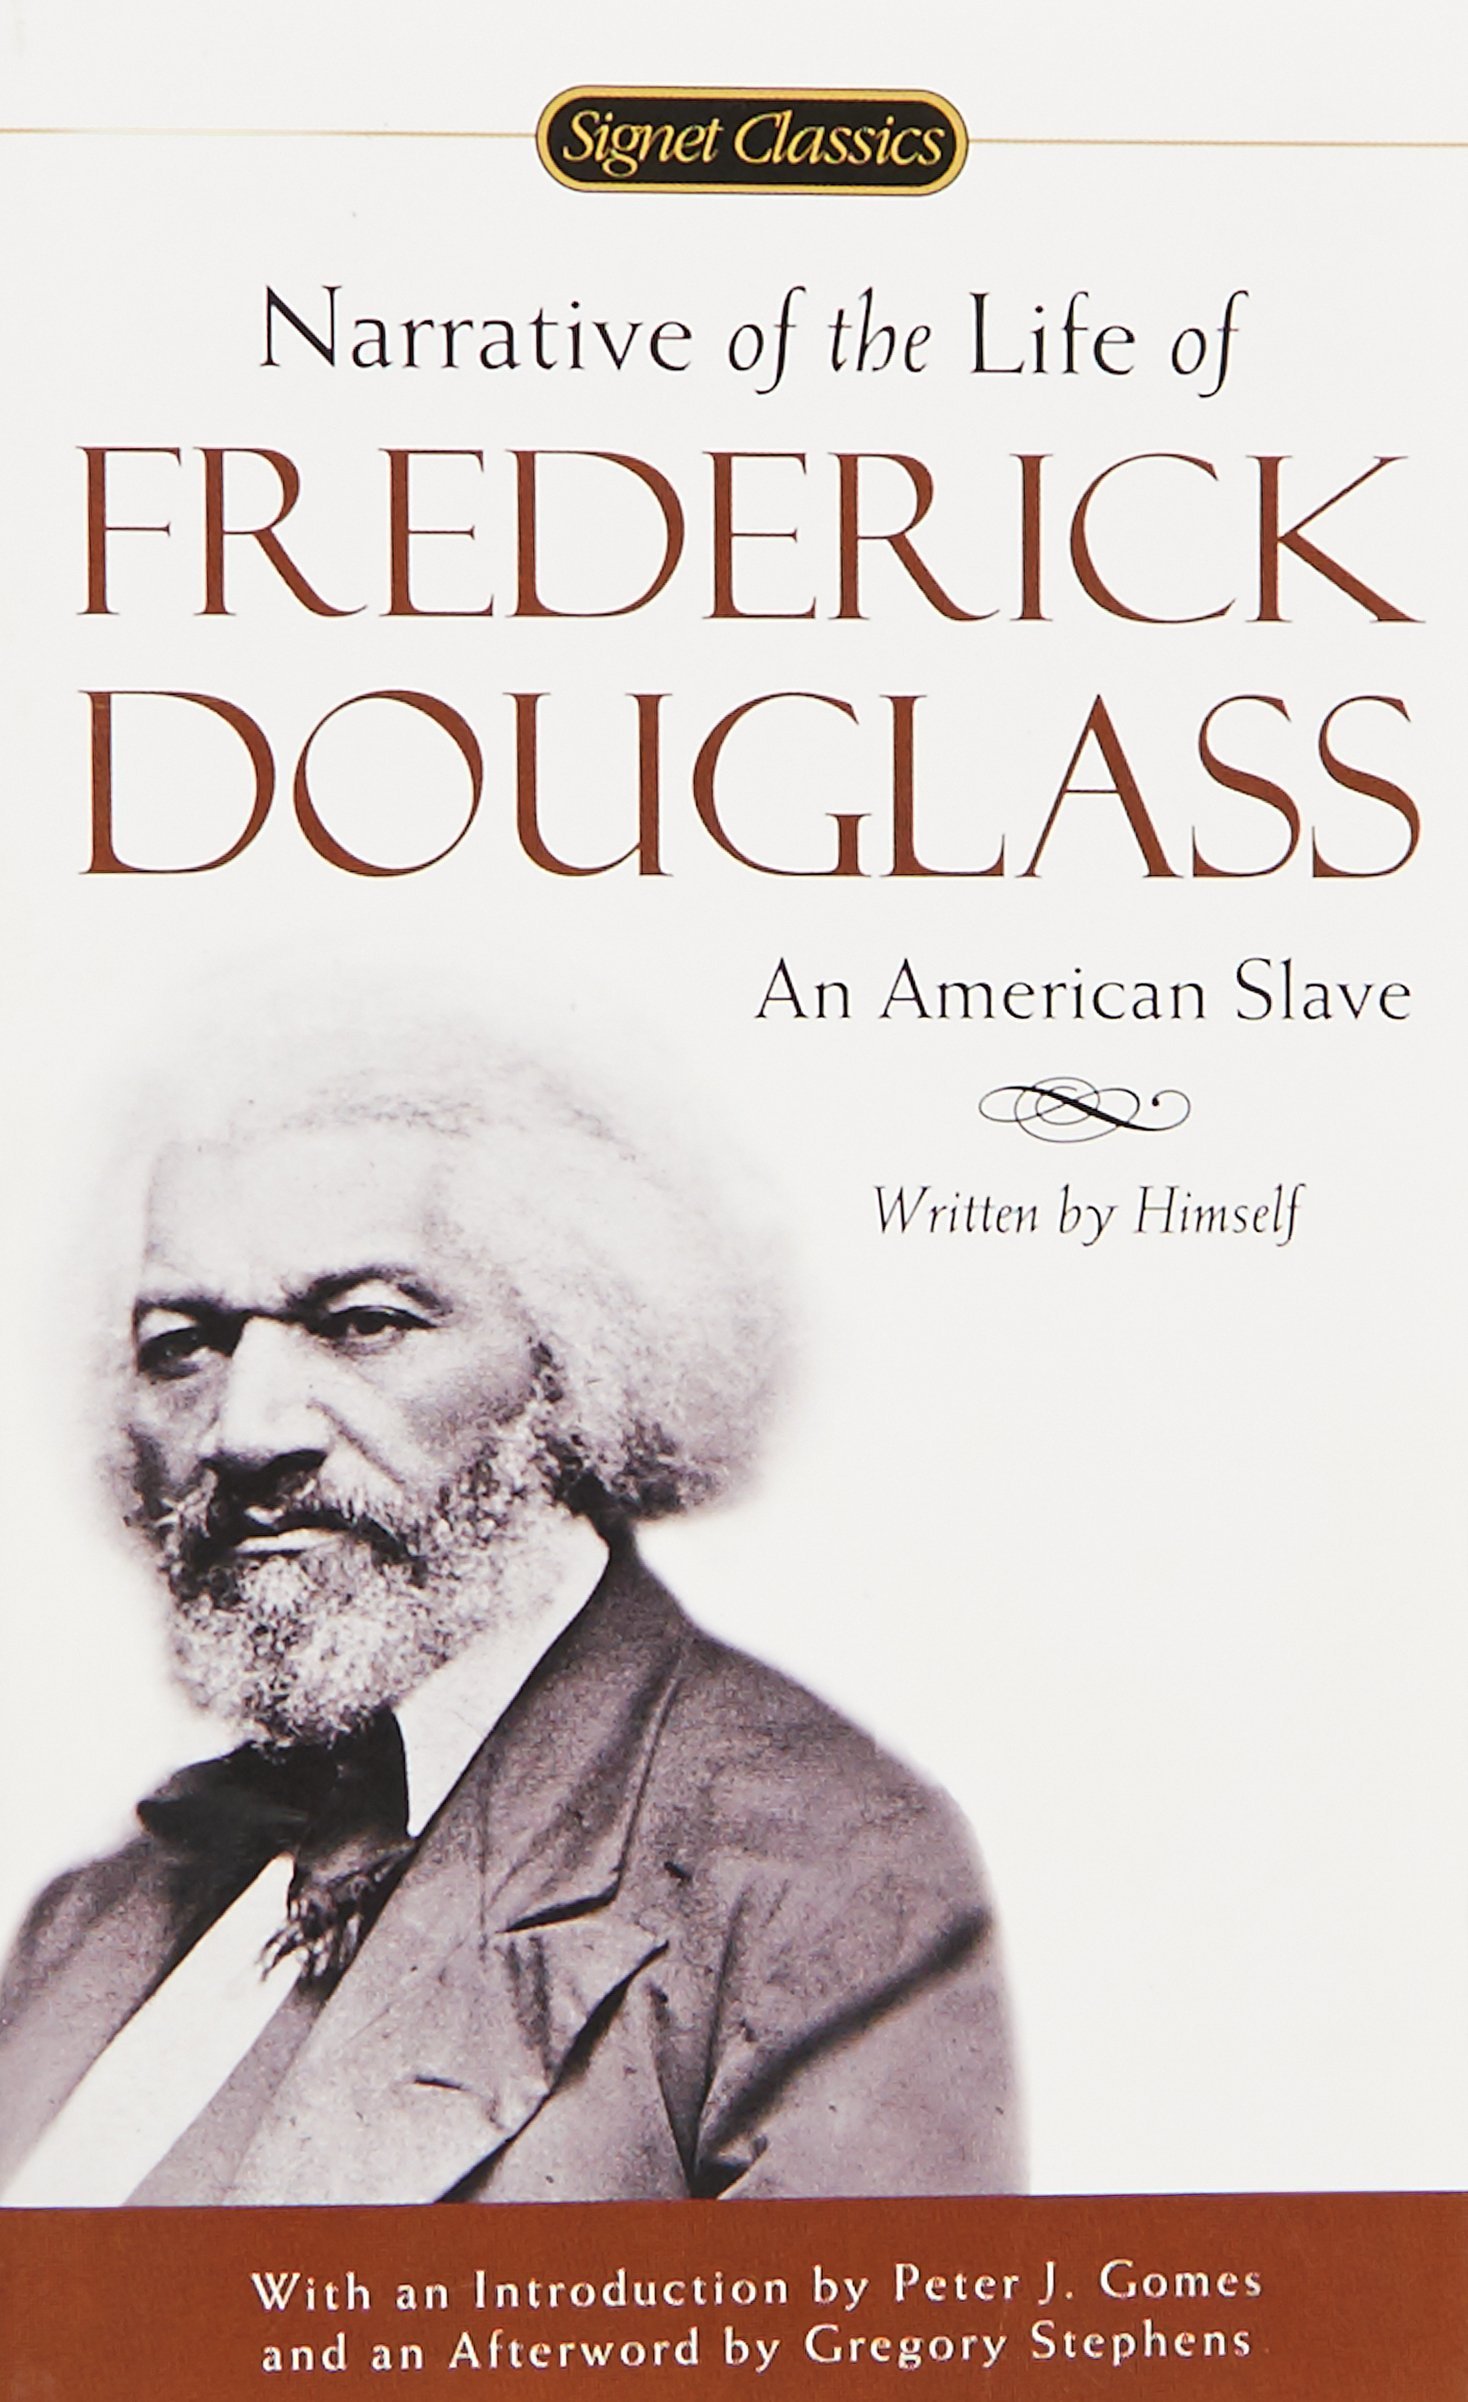 essays on frederick douglass narrative of the life Essay, term paper, research paper: expository essays see all college   narrative of the life of frederick douglass, and other similar biographies in  narrative.